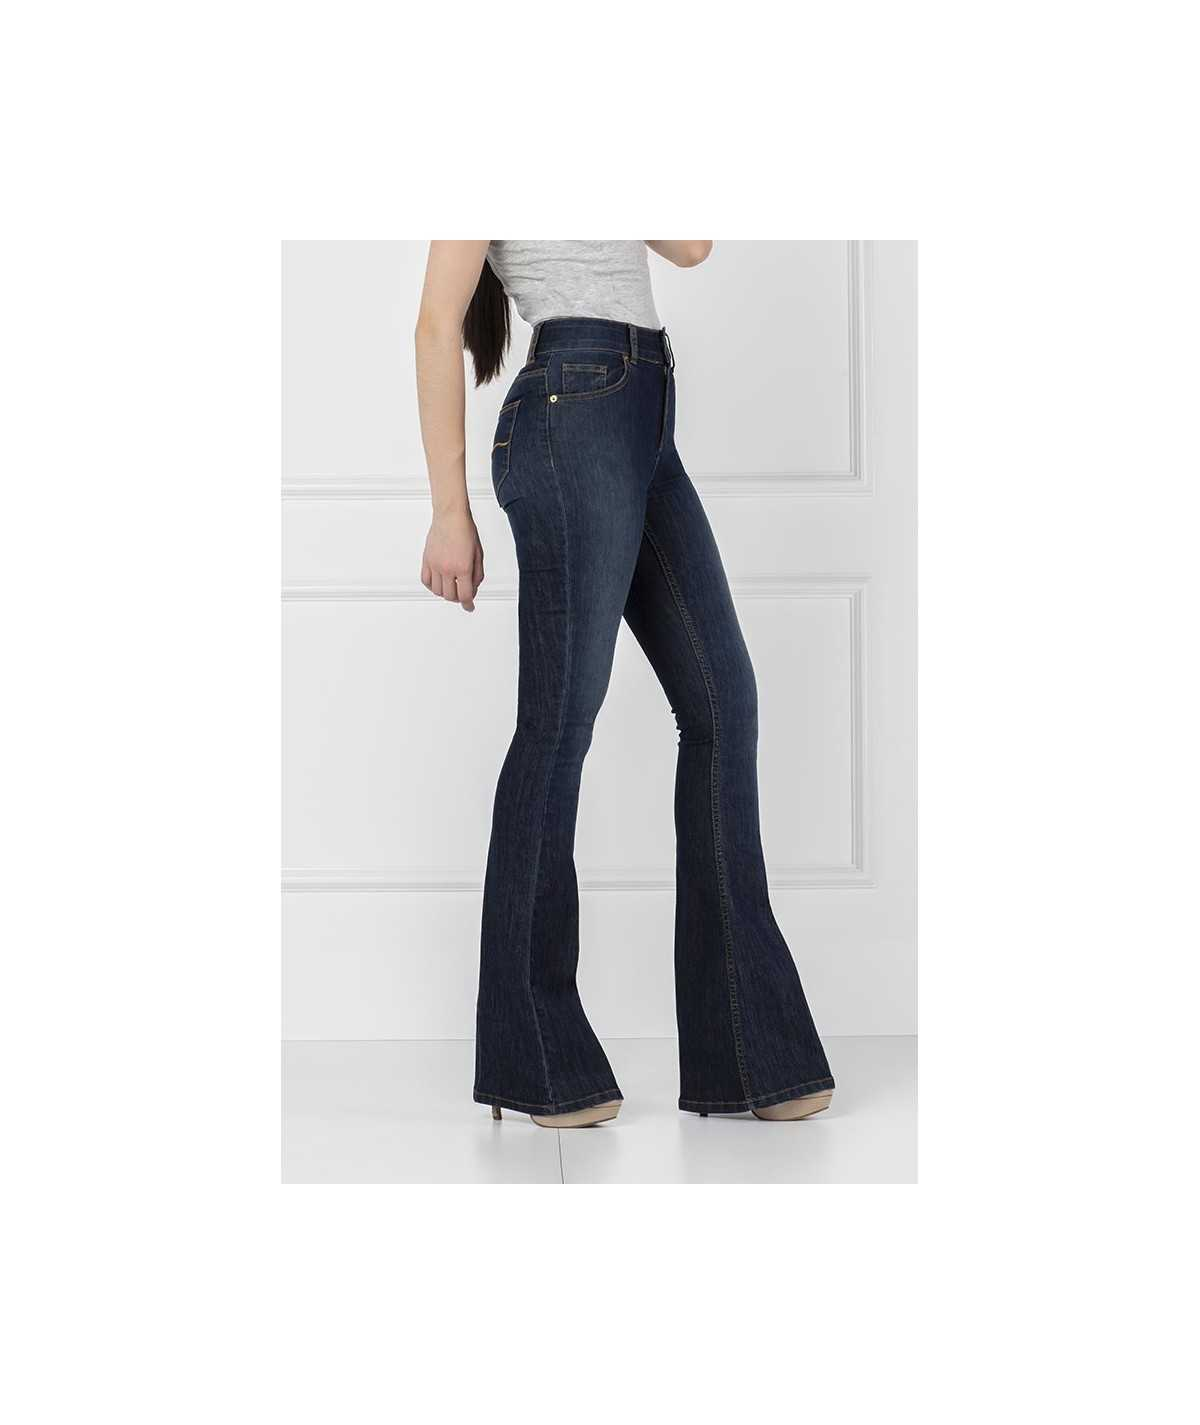 Flare Jeans - Miss Flawless Aly John